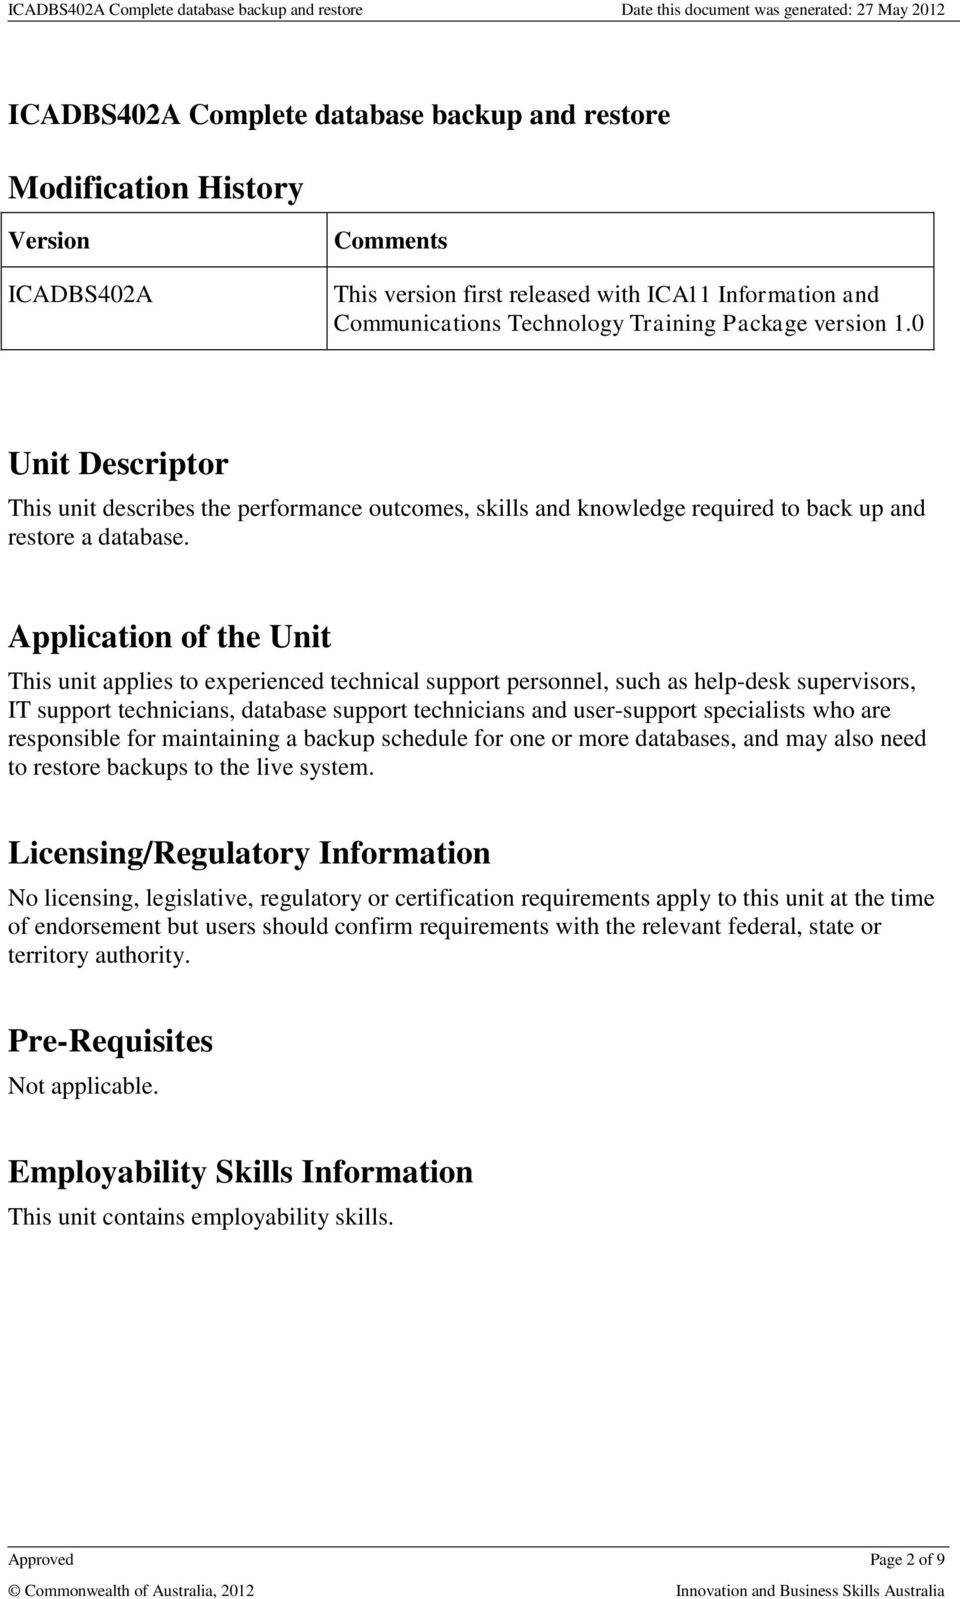 Application of the Unit This unit applies to experienced technical support personnel, such as help-desk supervisors, IT support technicians, database support technicians and user-support specialists